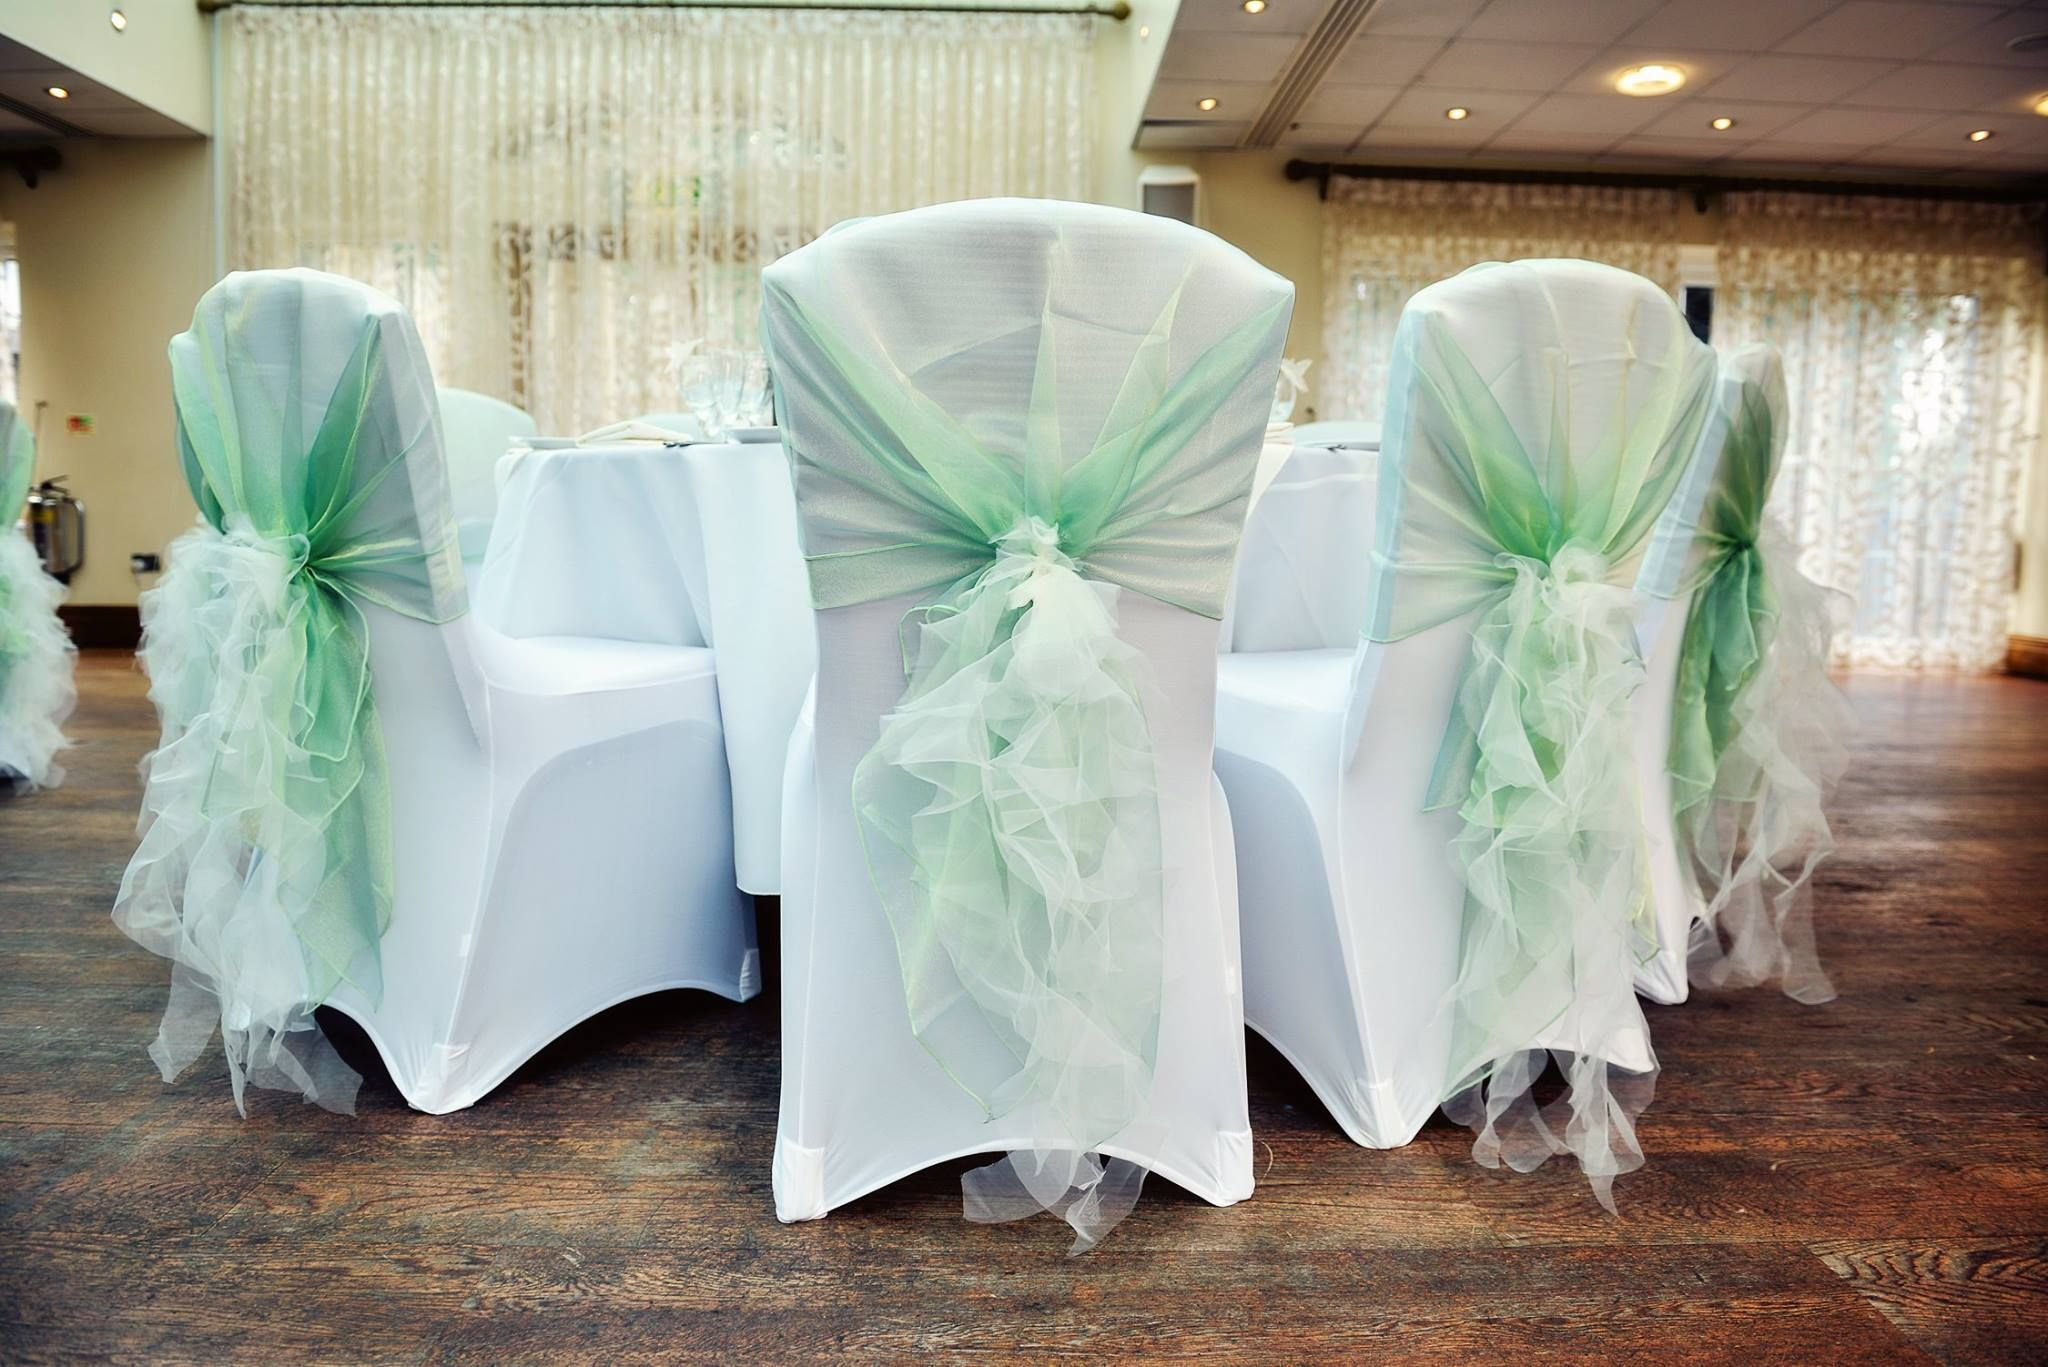 Chair Cover Ideas. Chair Cover Inspiration. Chair Covers. Chair Hoods. Sage  Green Ruffle Chair Hoods.